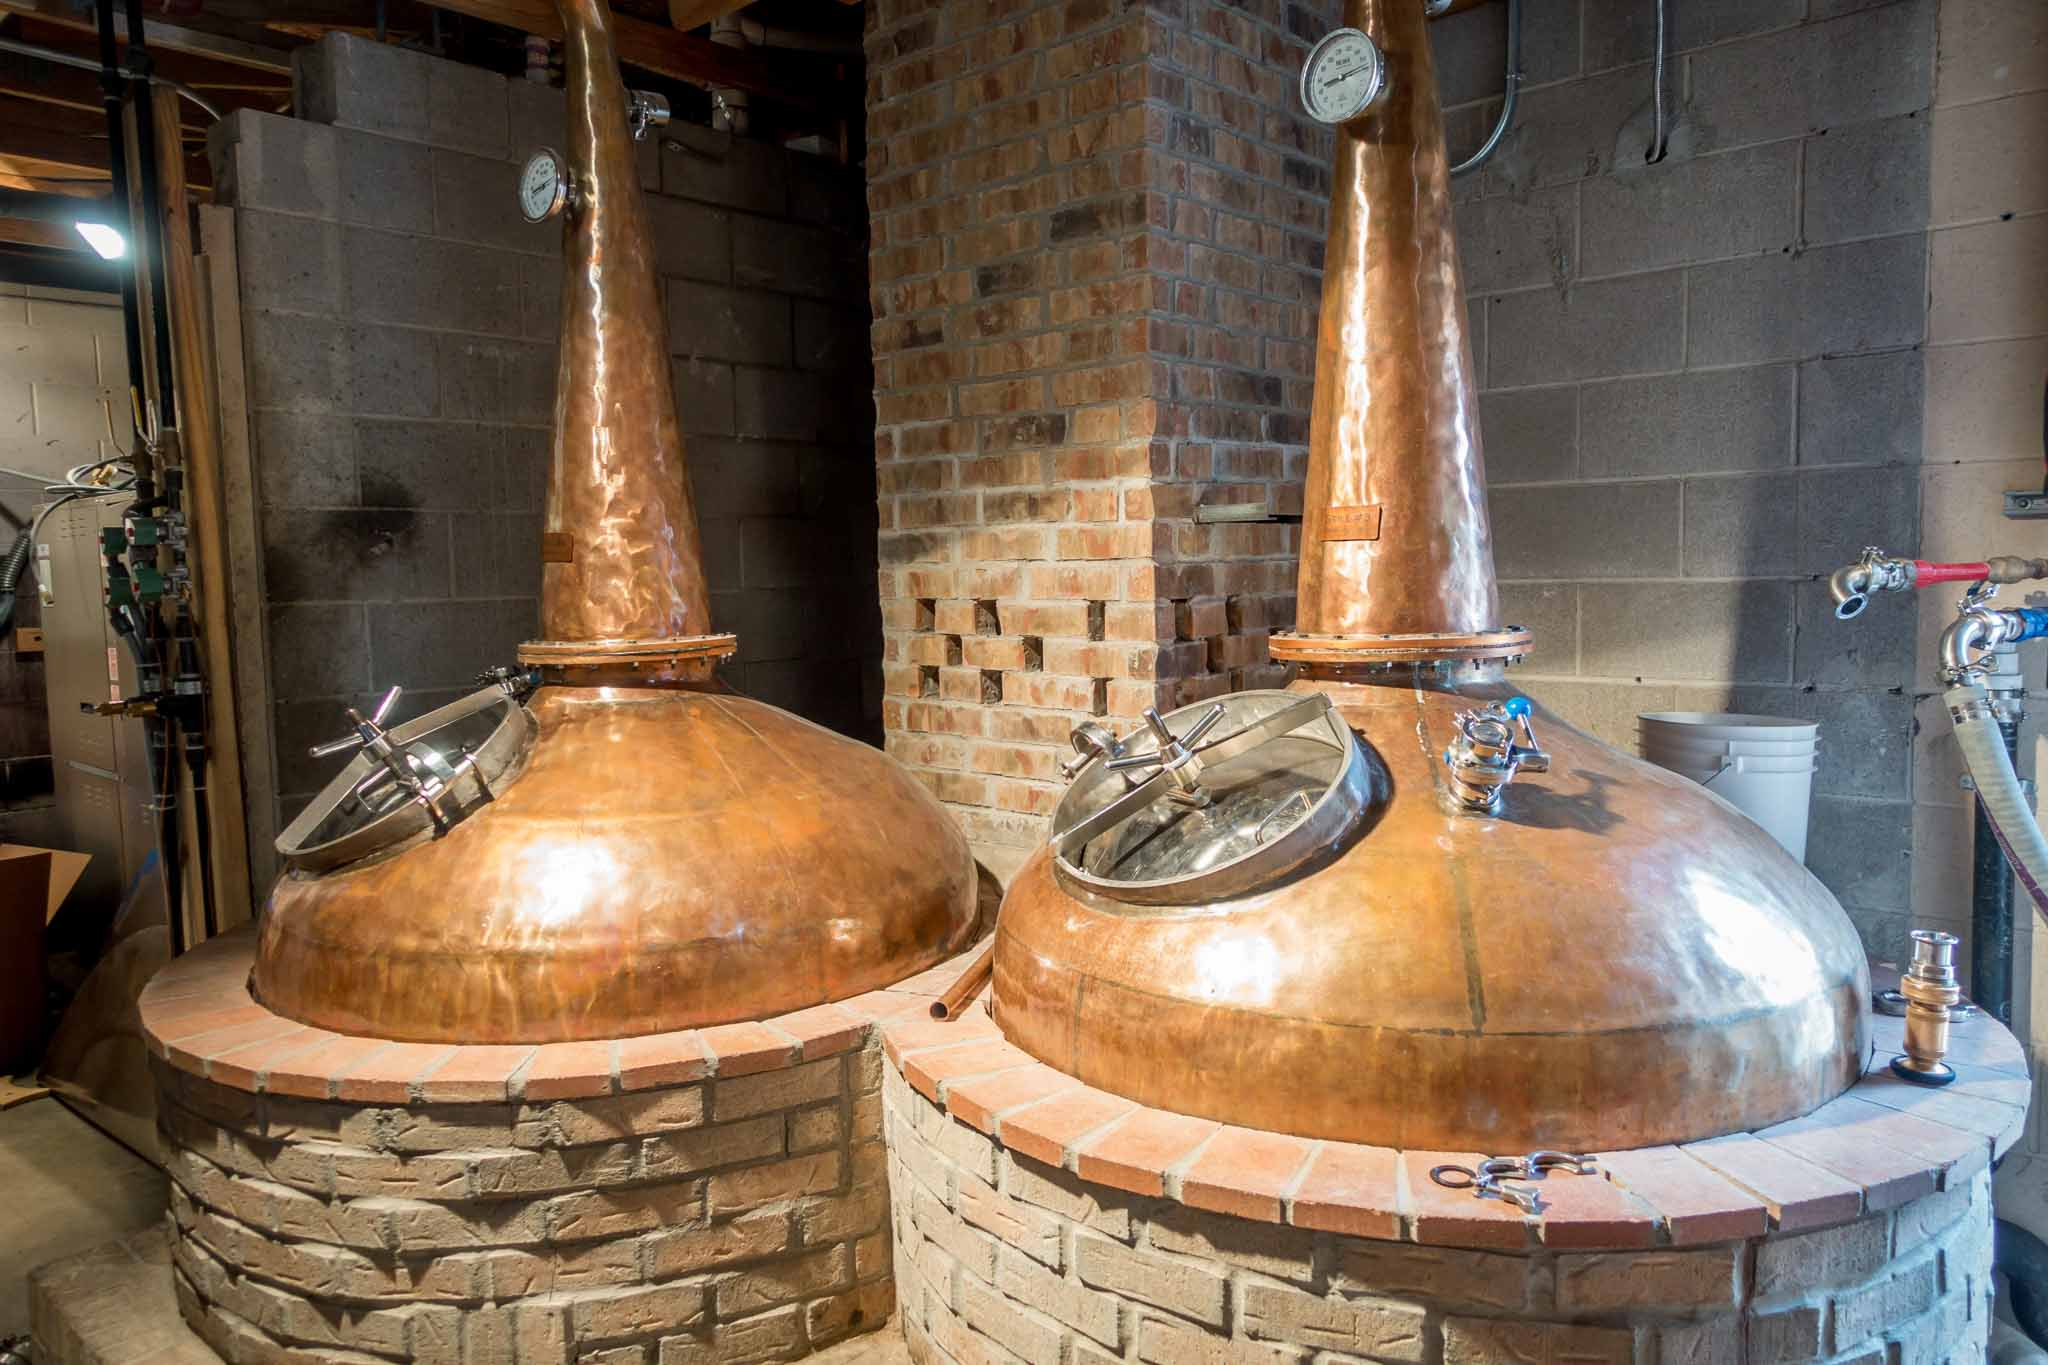 Copper stills surrounded by brick